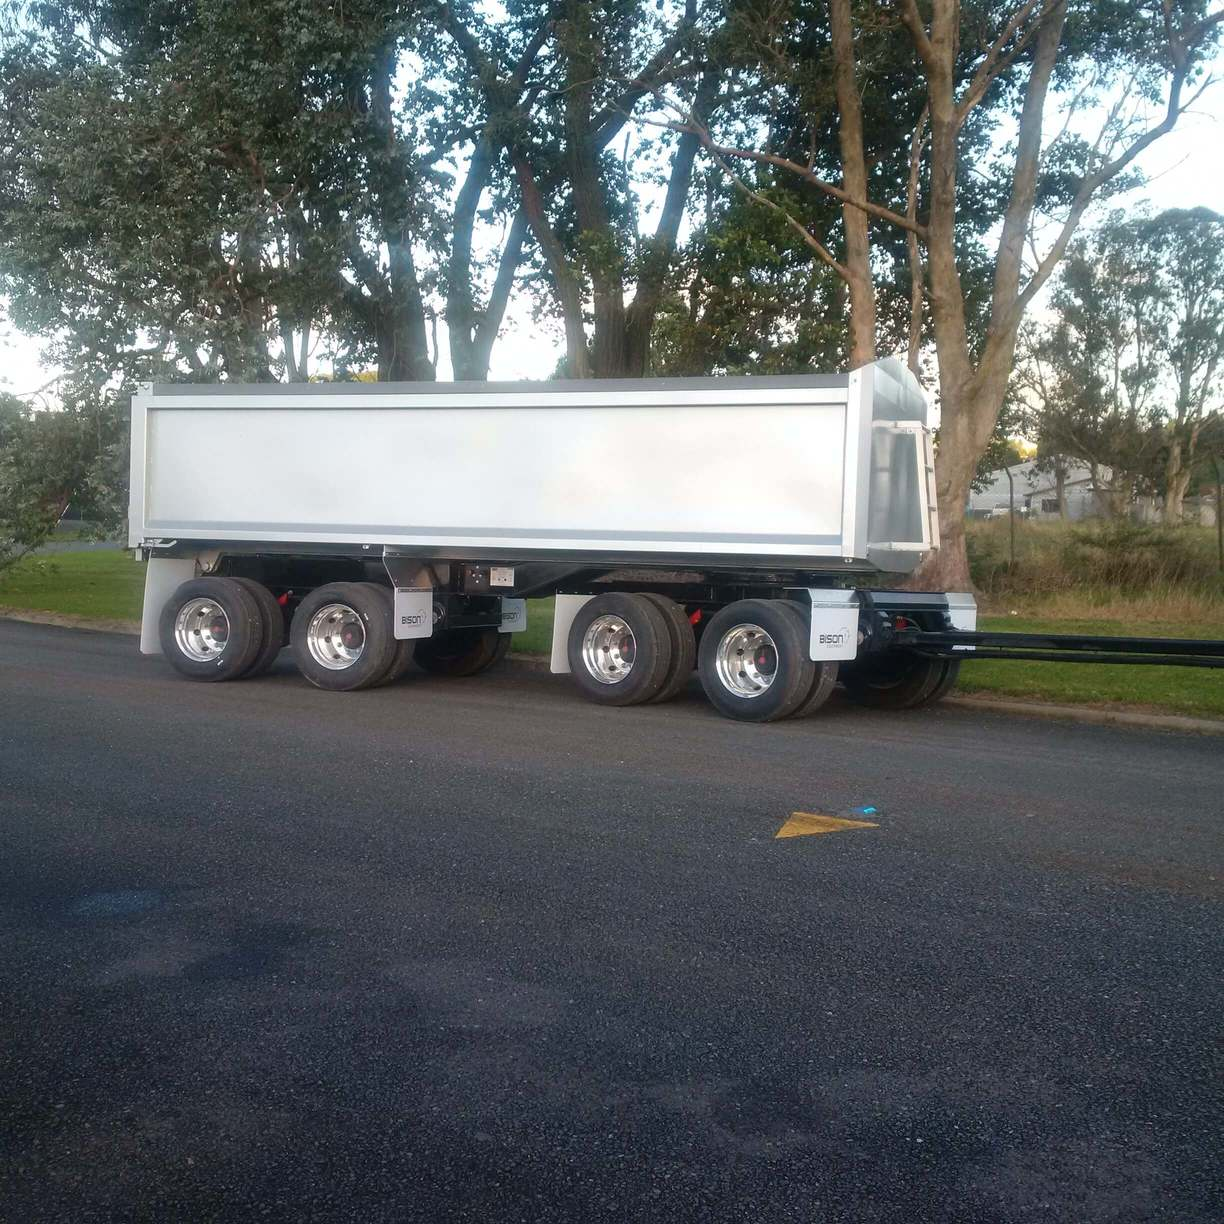 Bison 6.1m 4-Axle Raex/Bisalloy Tipping trailer, with alloy wheels